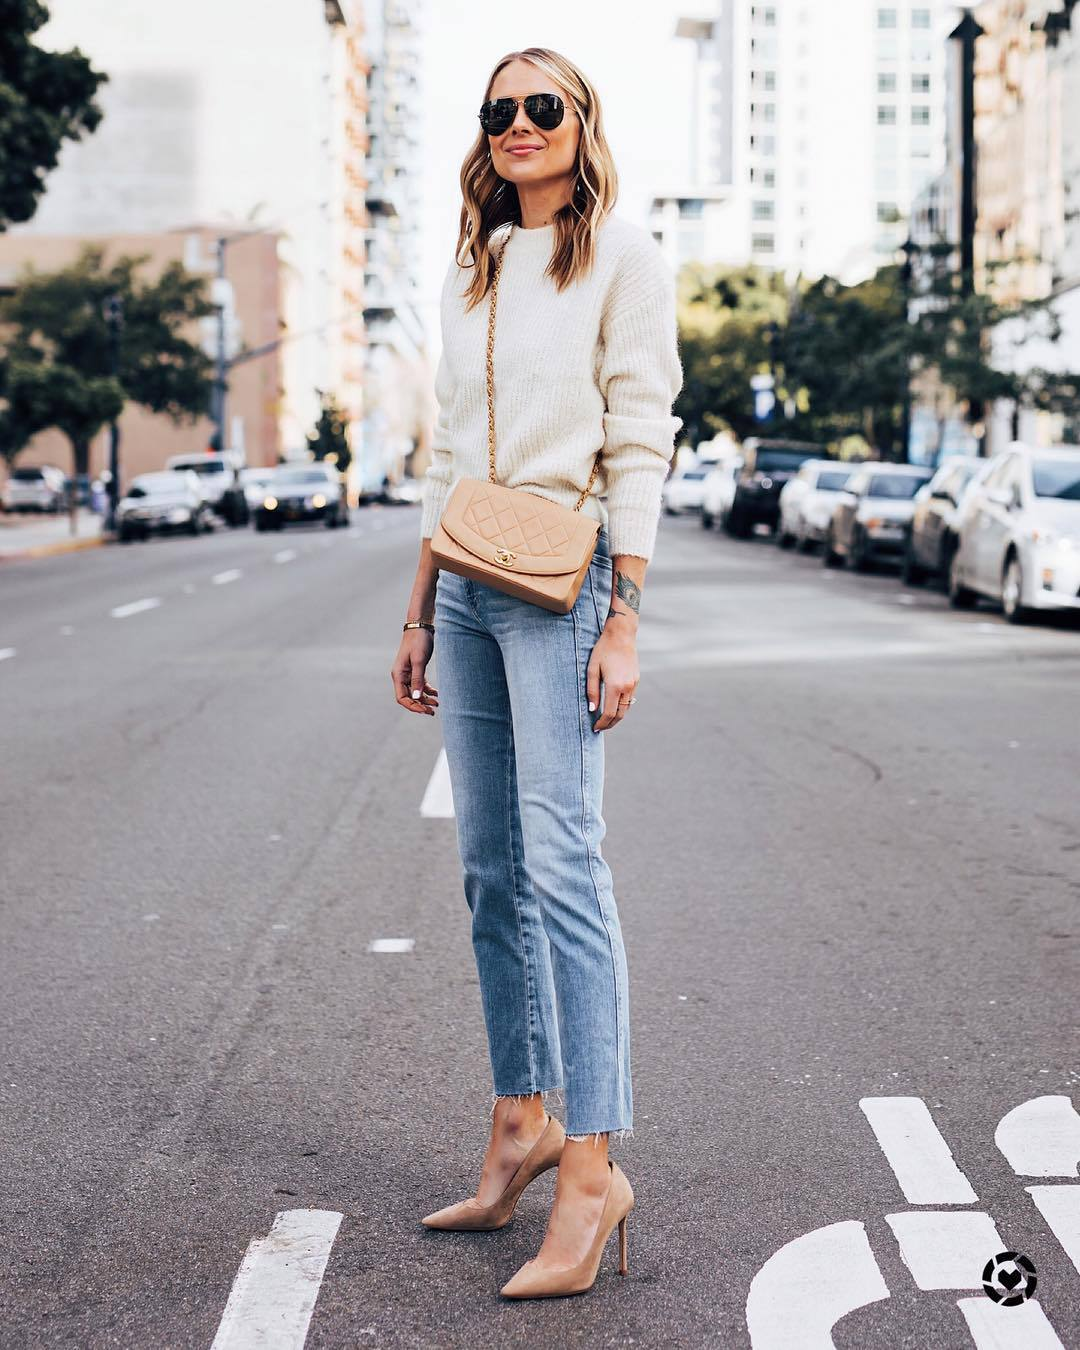 jeans high waisted jeans cropped jeans pumps crossbody bag white sweater